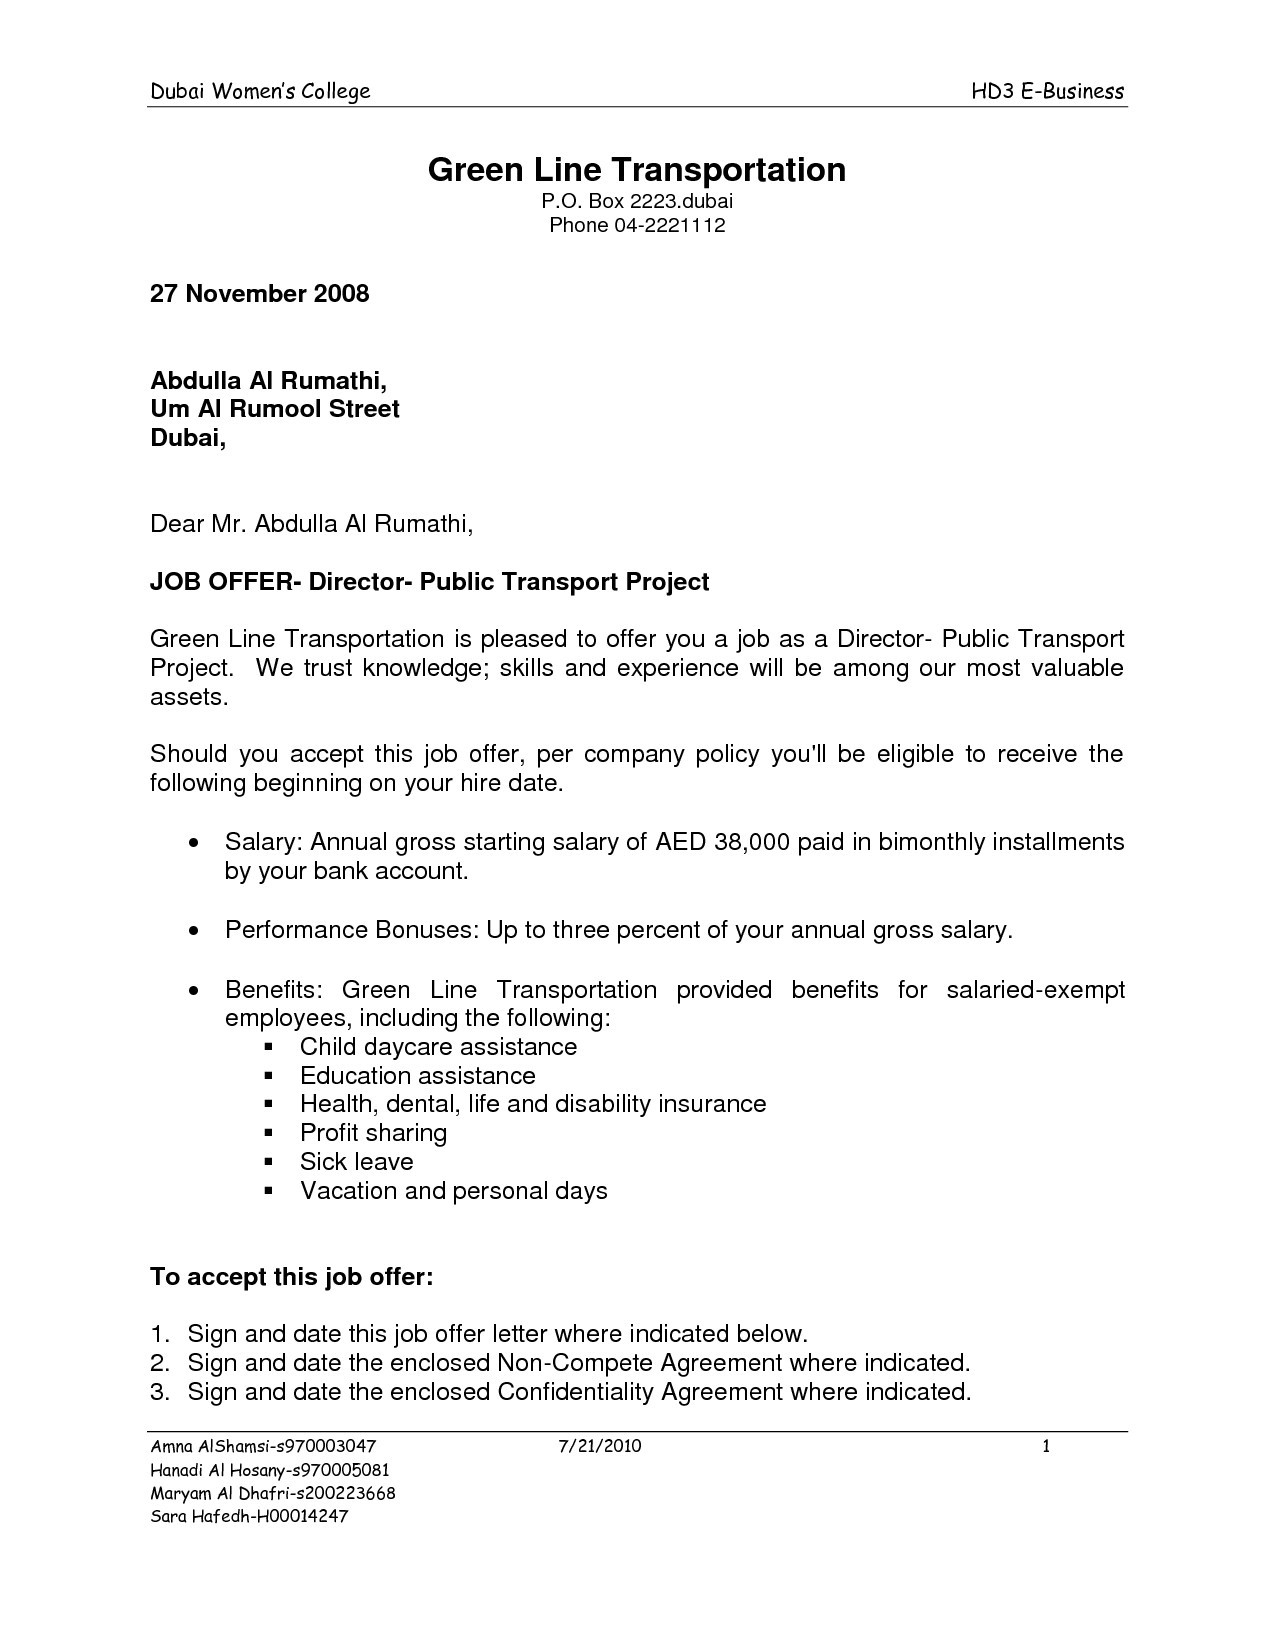 exempt offer letter template example-Executive Job fer Letter Sample Valid Job Fer Letter Template Us Copy Counter Fer Letter Sample 12-q